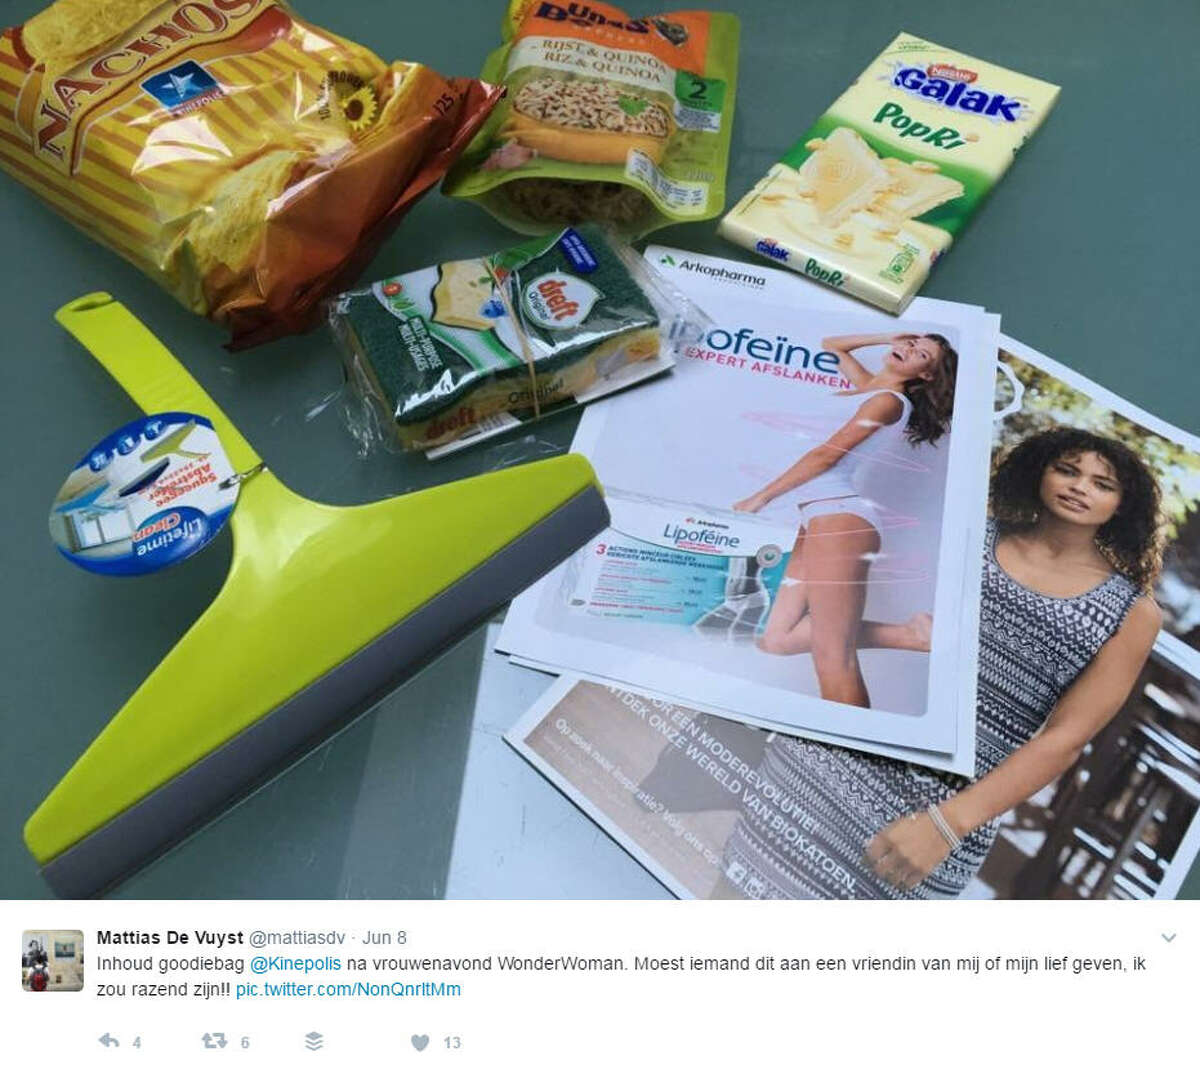 A theater in Belgium gave away goodie bags at their women-only screening of